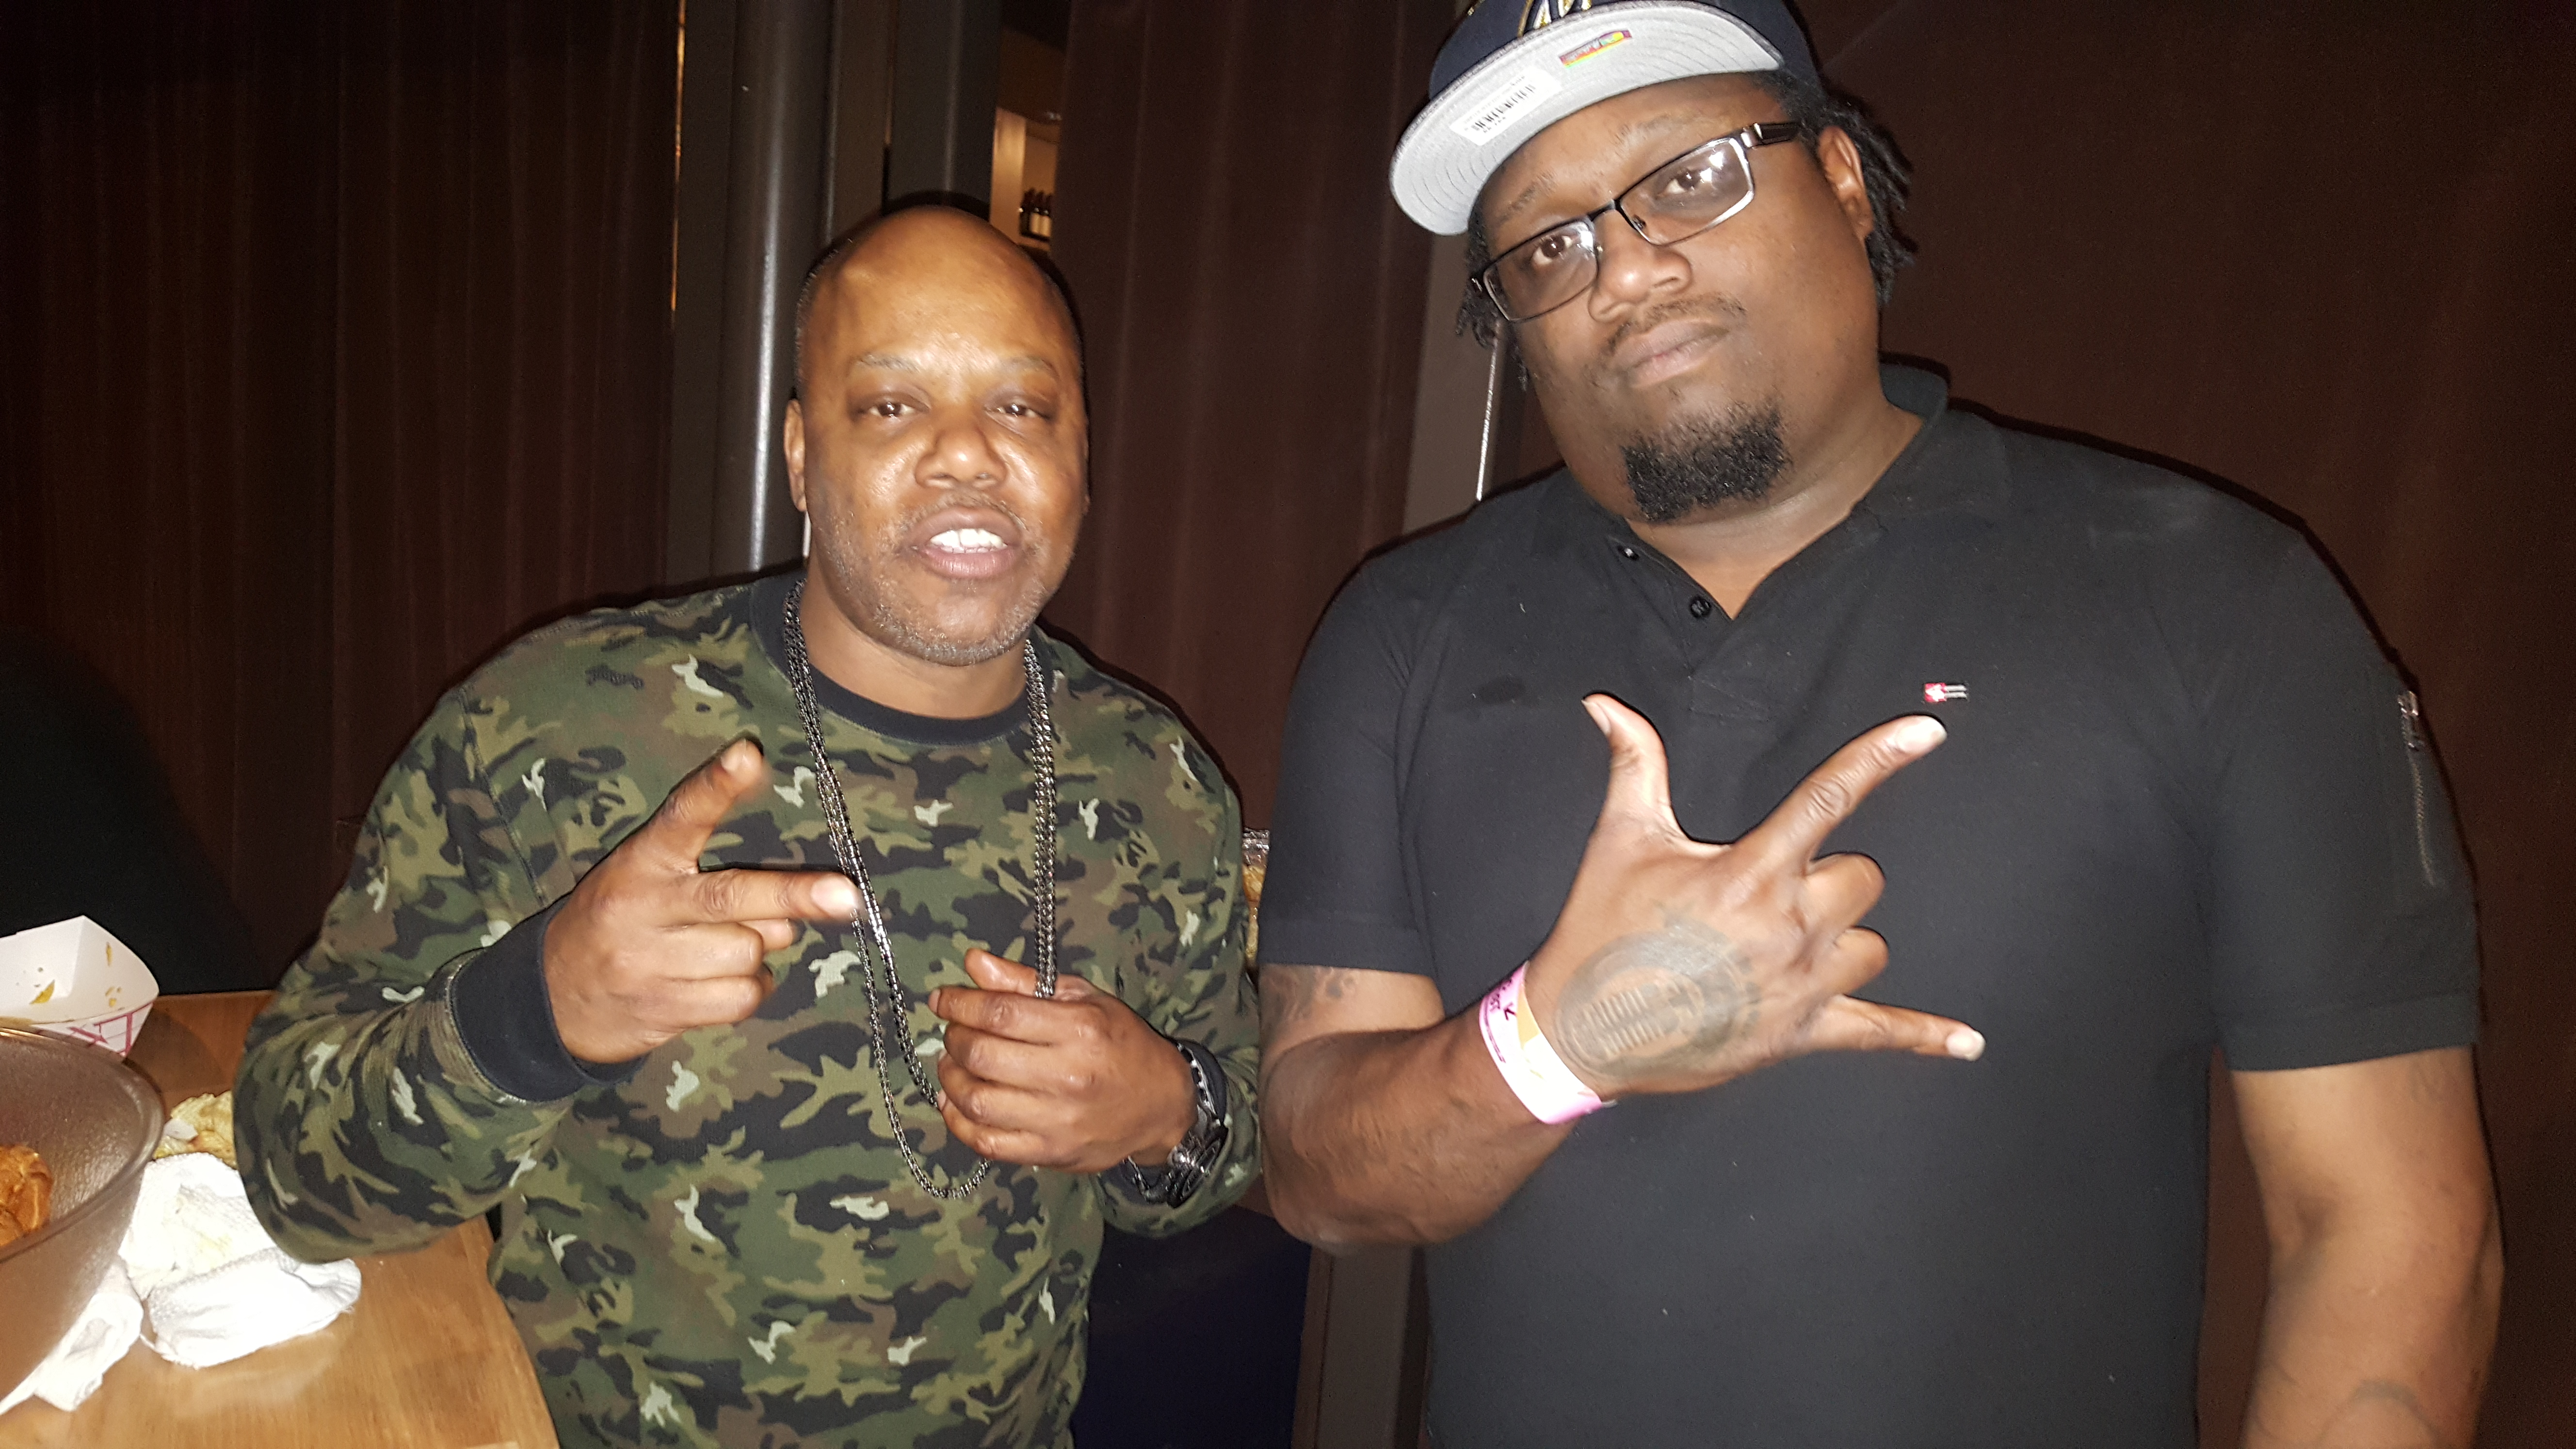 WITH TOO $HORT